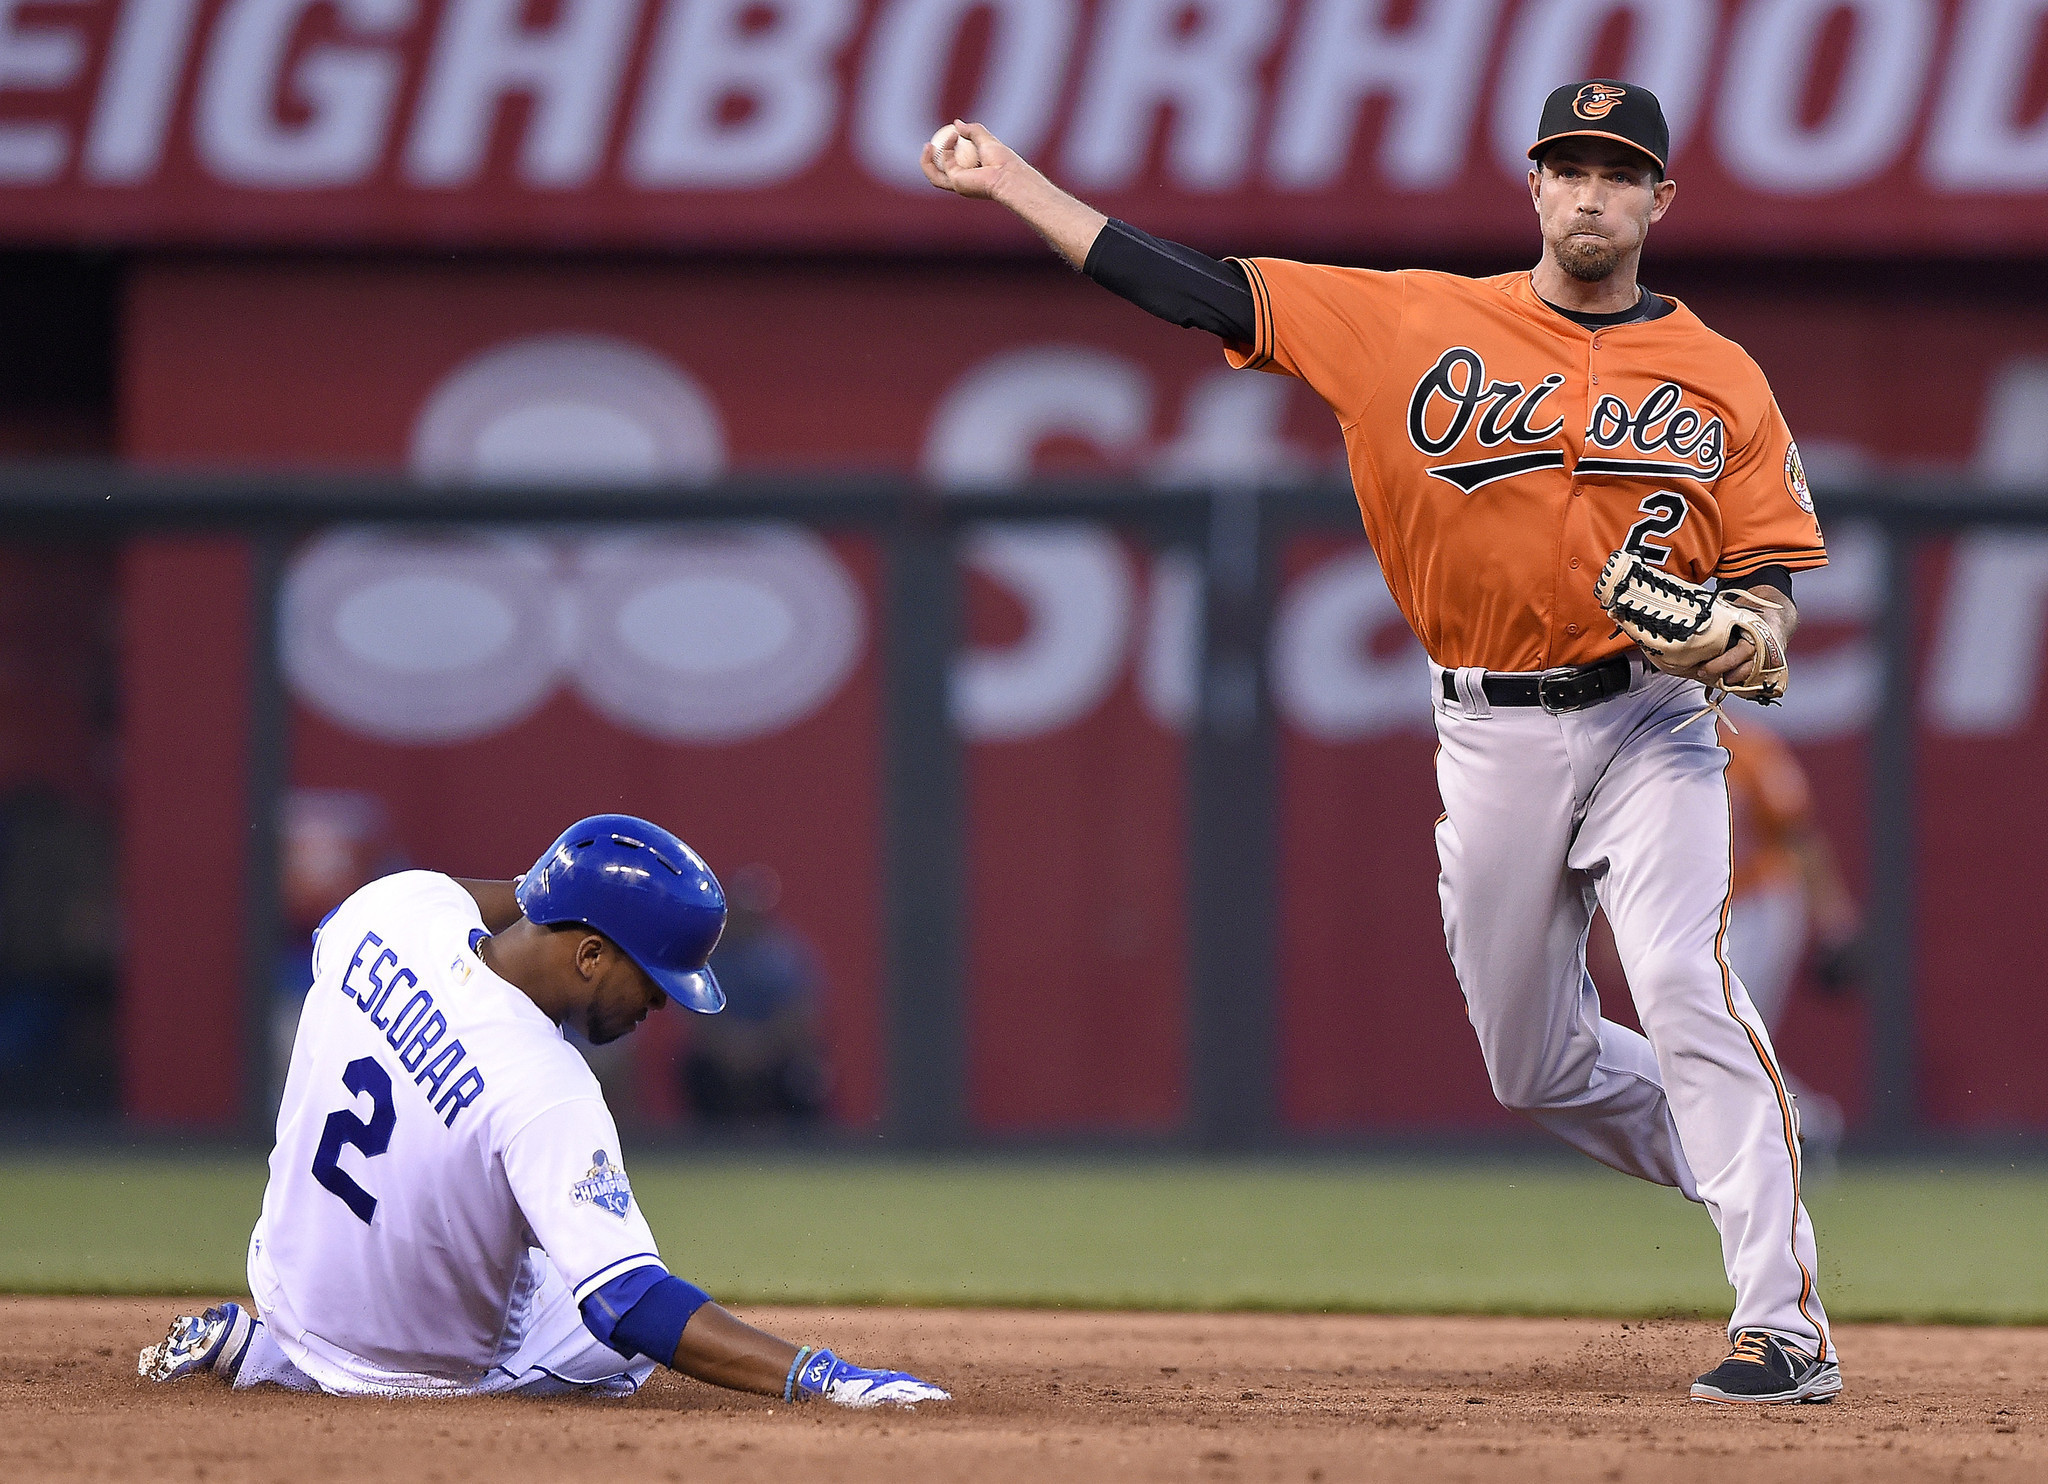 Bal-orioles-on-deck-what-to-watch-thursday-vs-white-sox-20160428